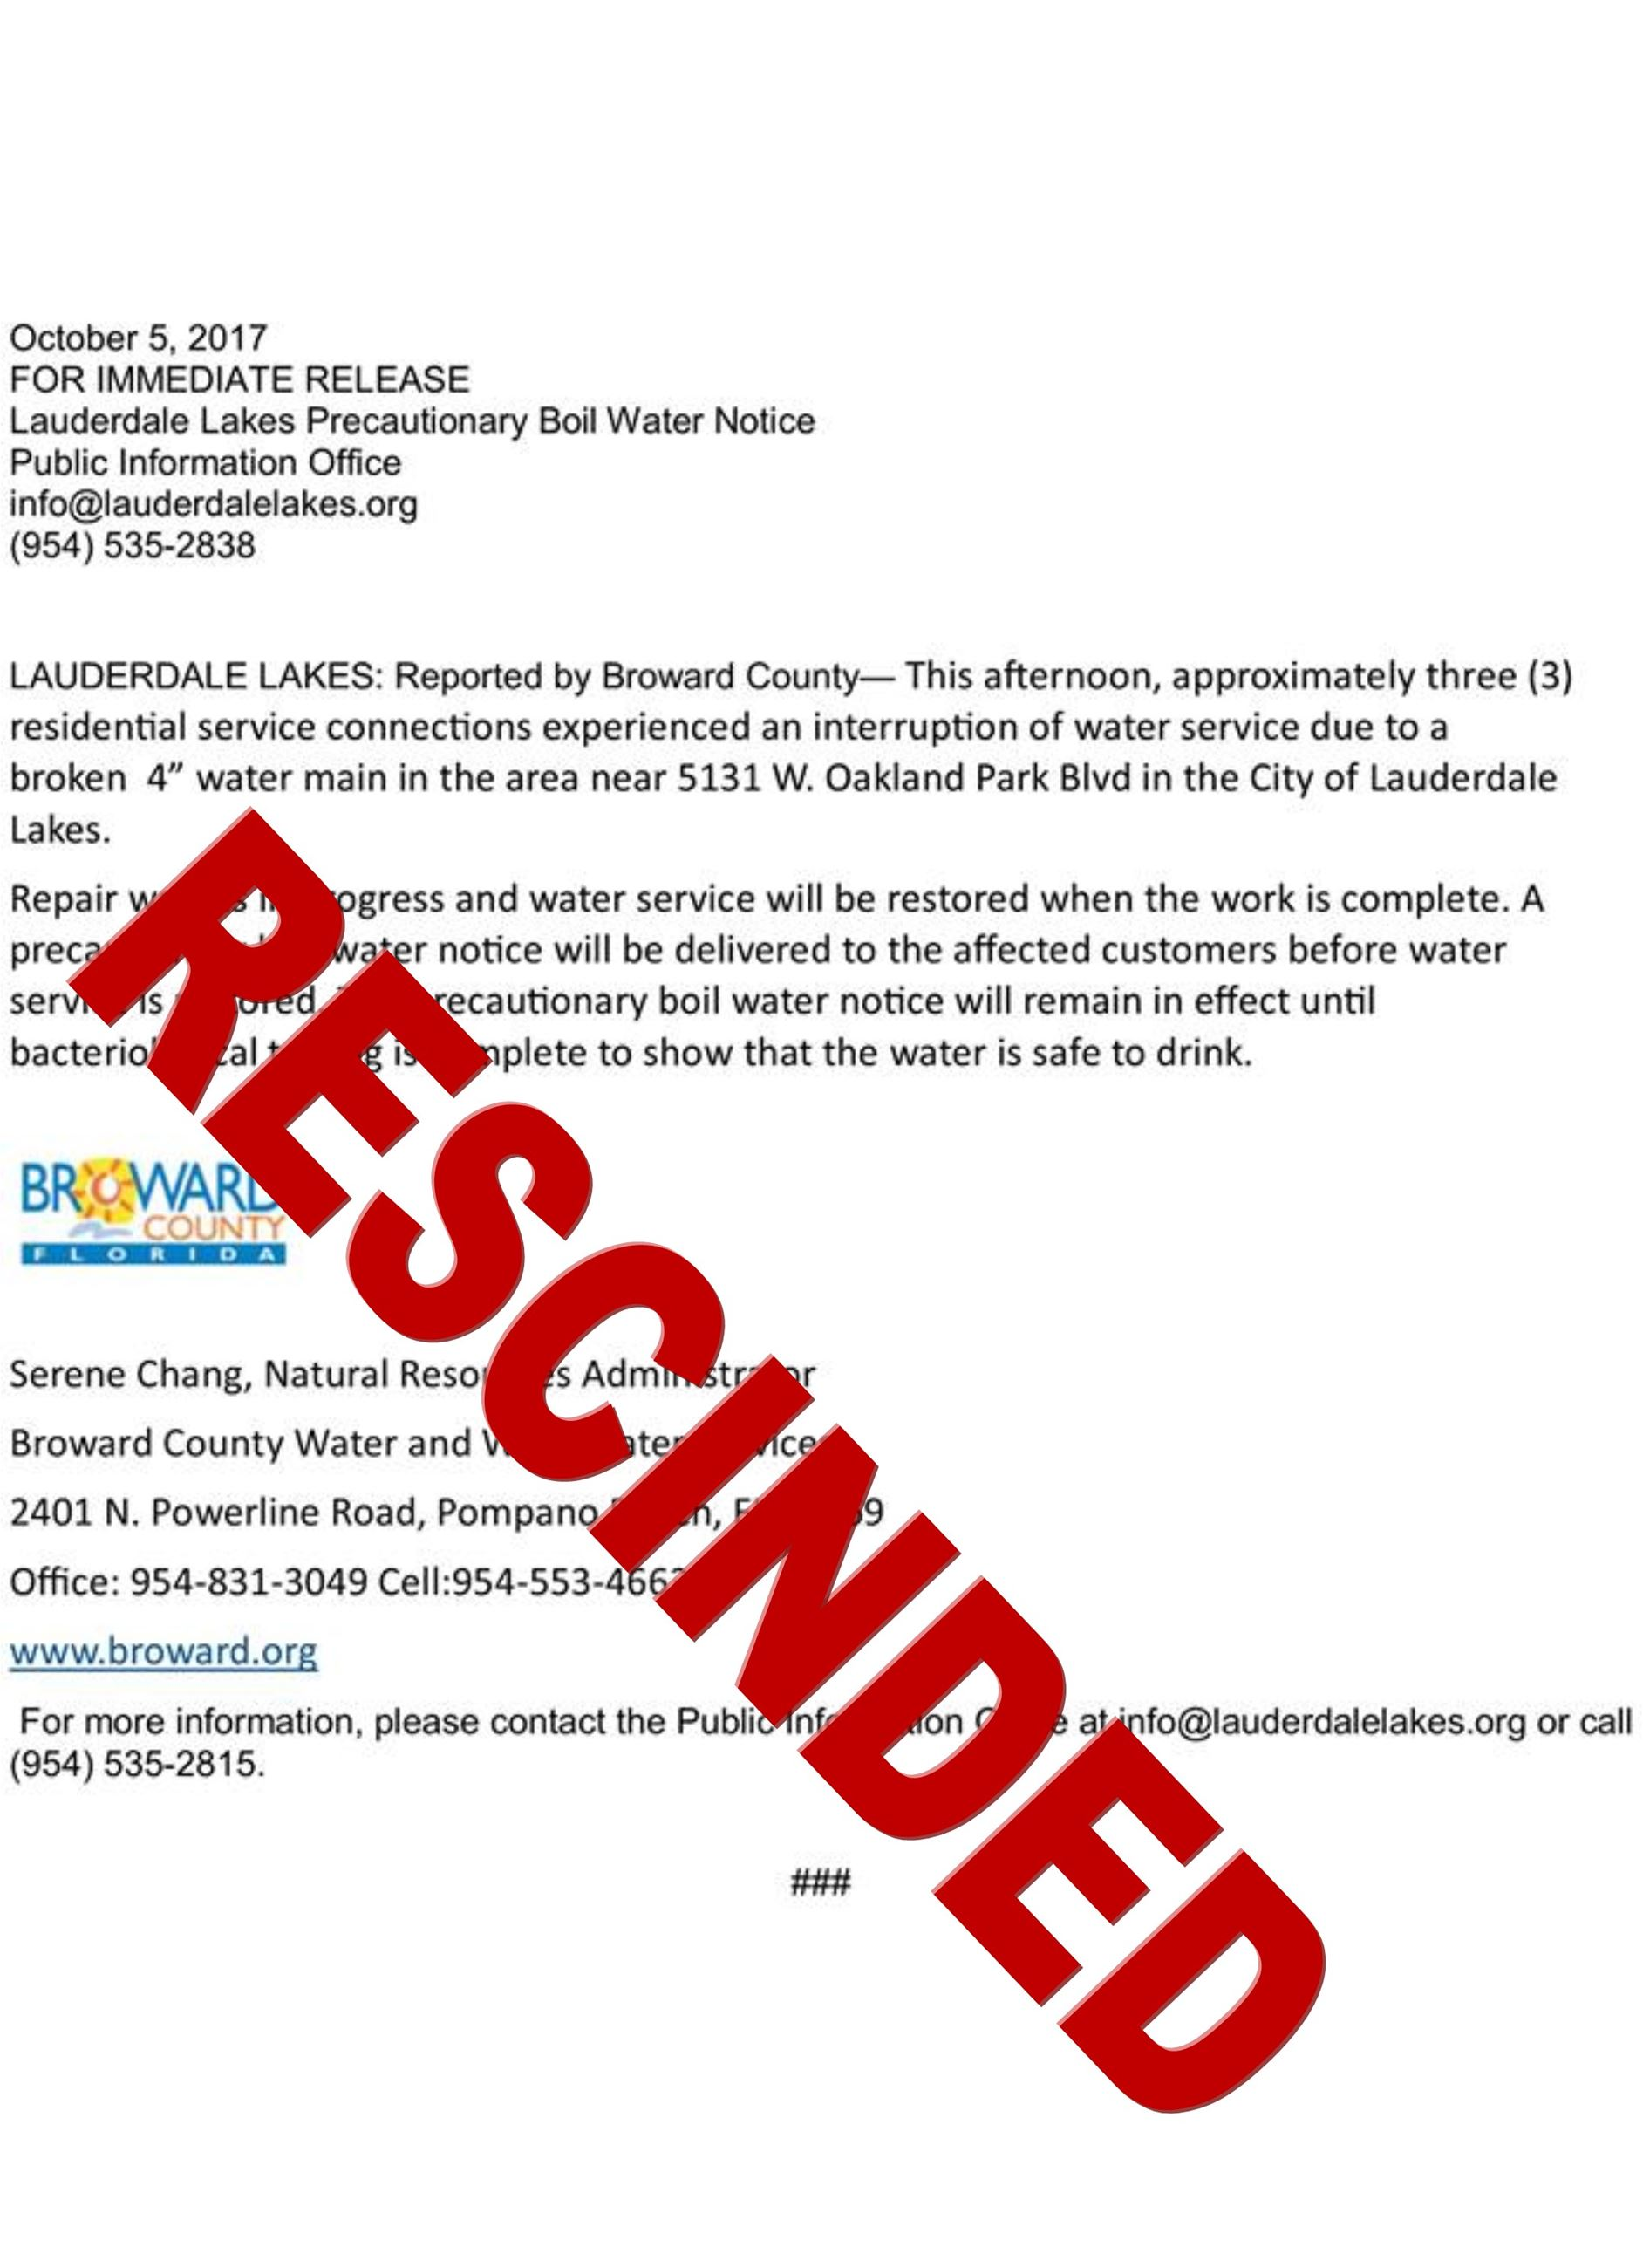 Rescinded press boil water